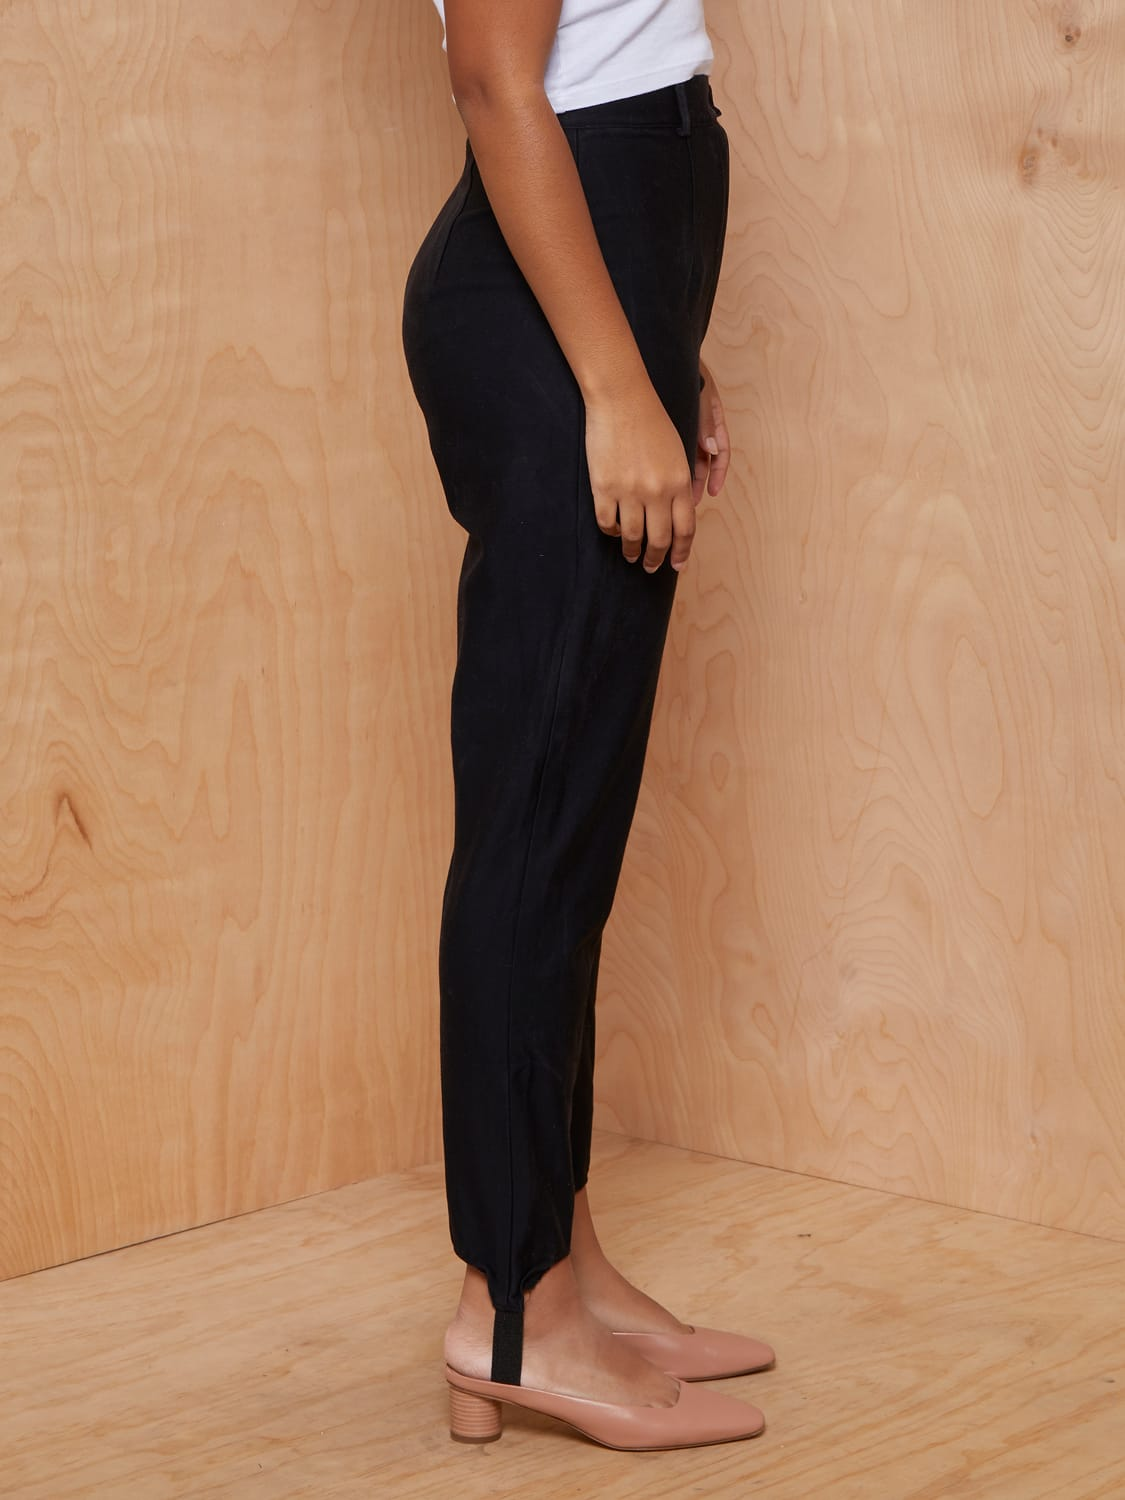 Vintage ZZ Michaels Black Stirrup Pants